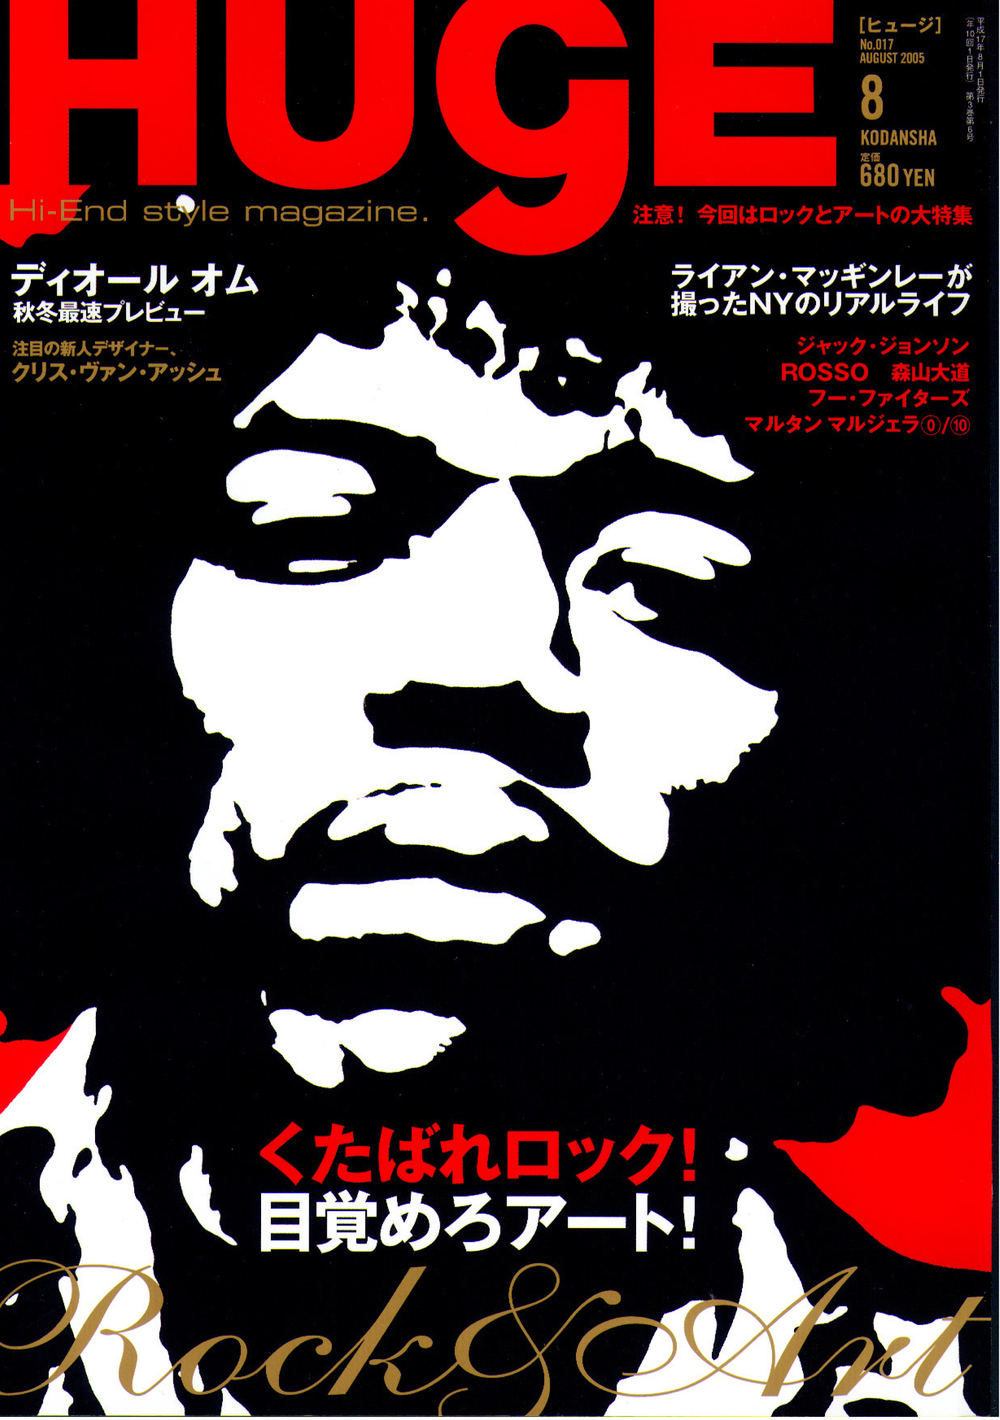 1. Huge No.017 Aug 2005 cover.jpg